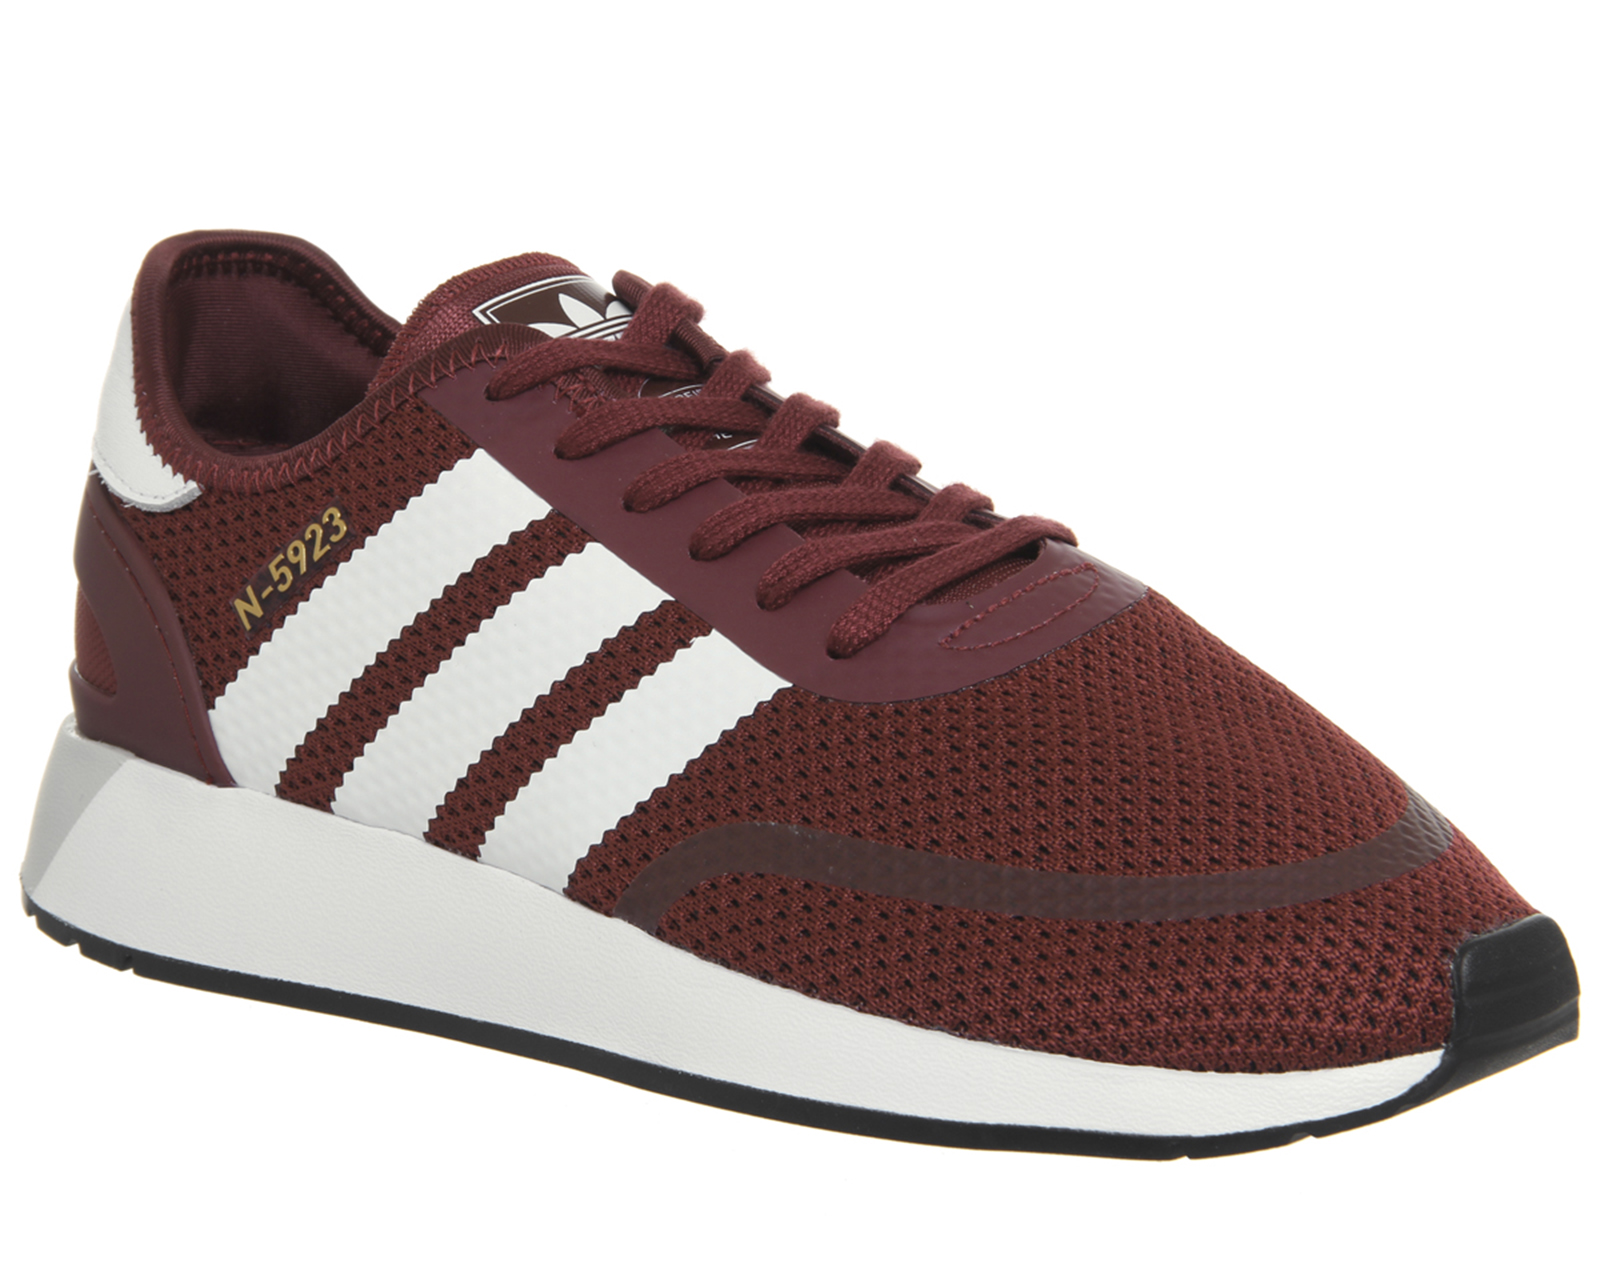 new style 181e0 46777 Sentinel Adidas N-5923 Trainers COLLEGIATE BURGUNDY Trainers Shoes